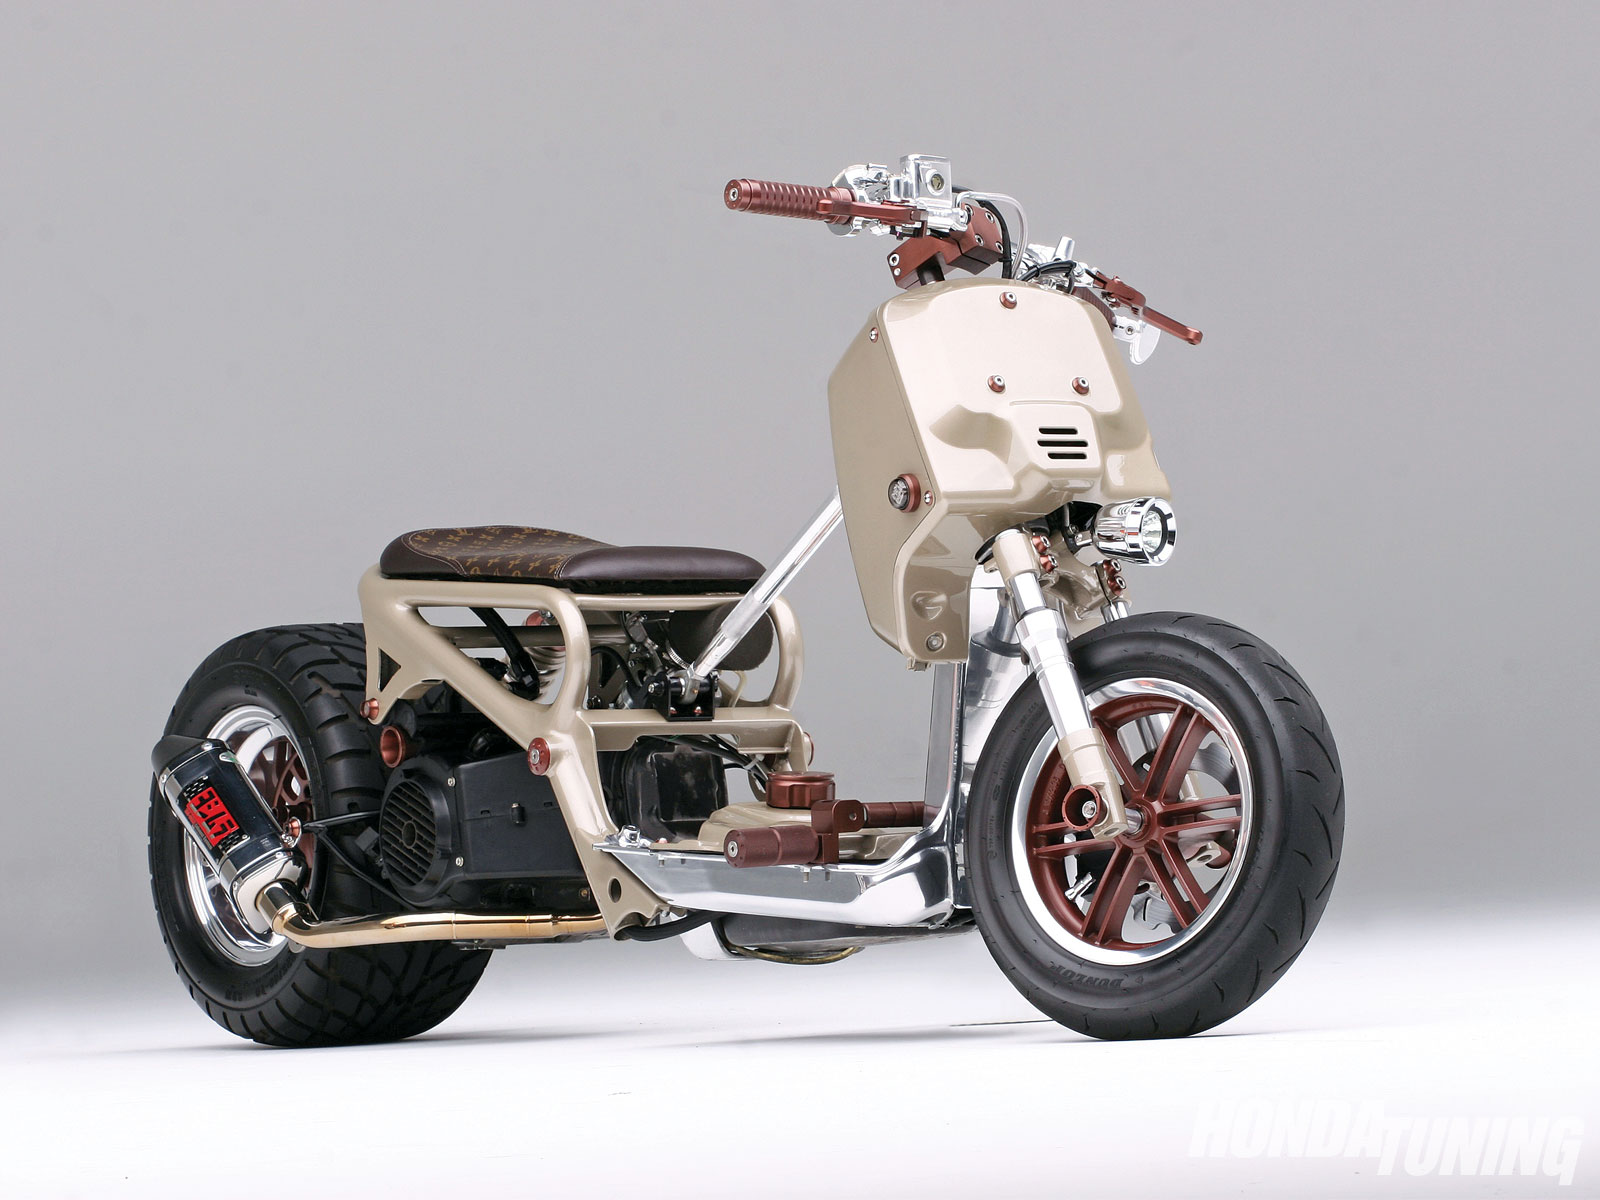 htup_2101_05_o 2004_honda_ruckus right_side_view